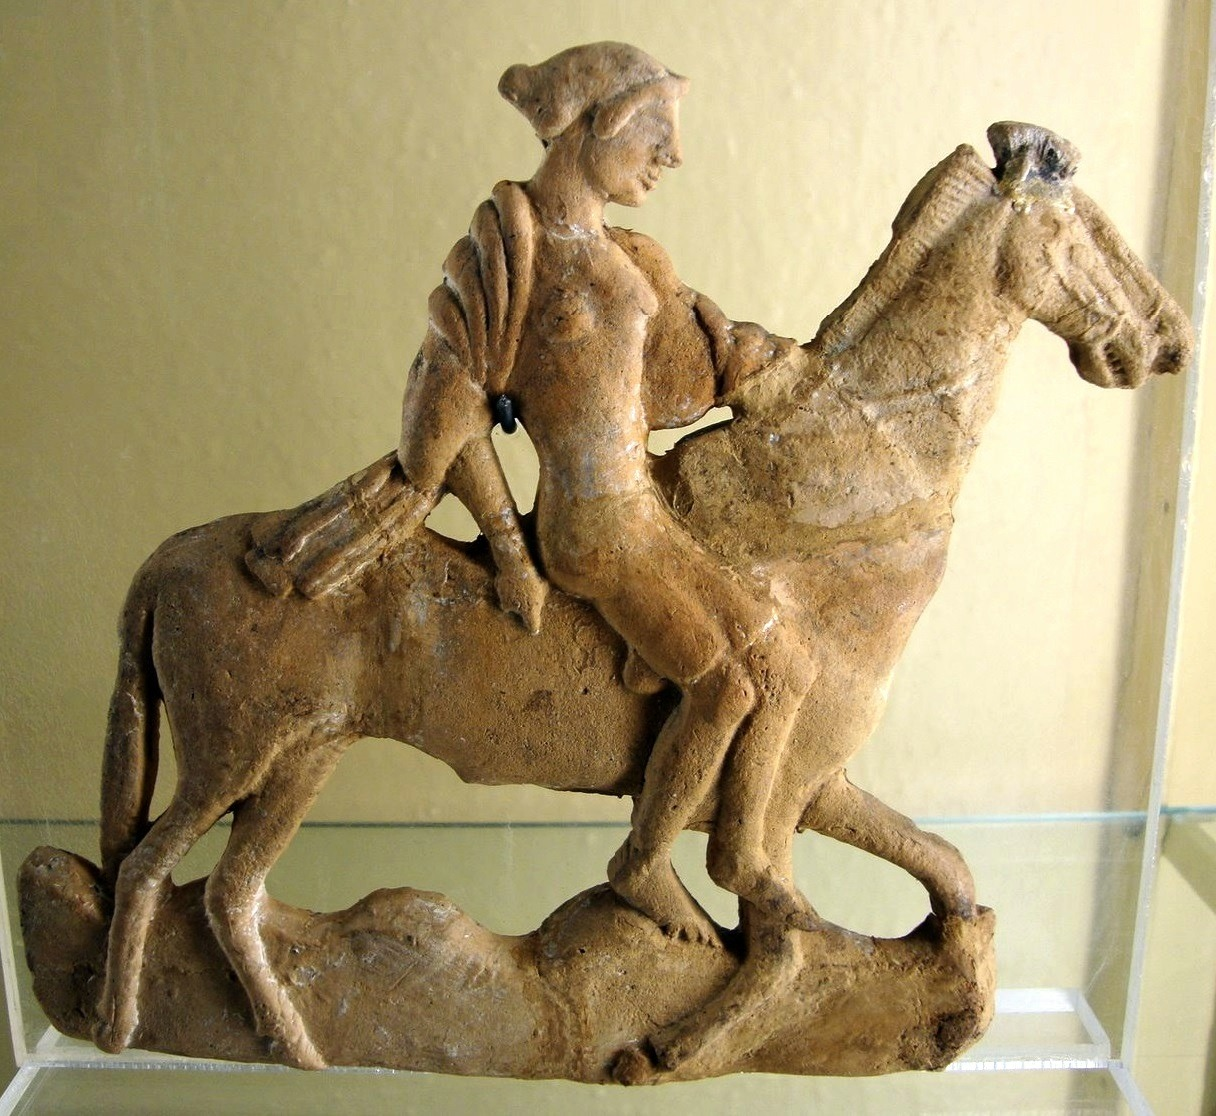 elyssediamond: